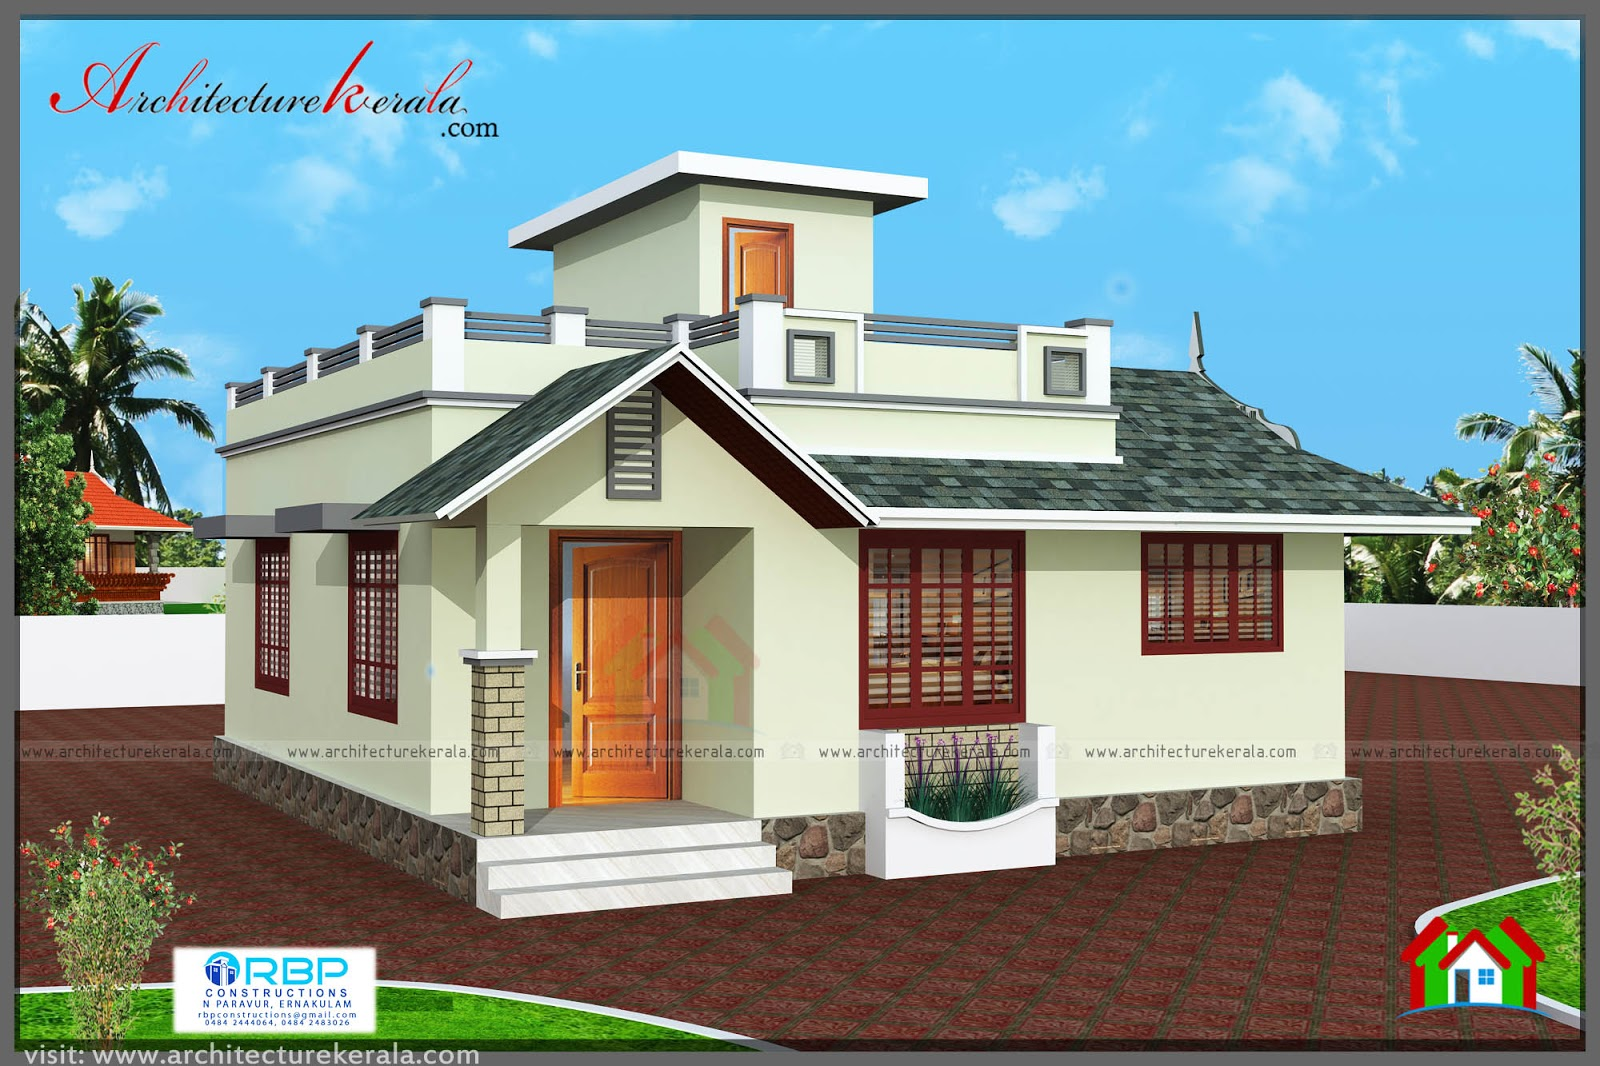 2 bedroom house plan and elevation in 700 sqft On cost of building a 700 square foot house